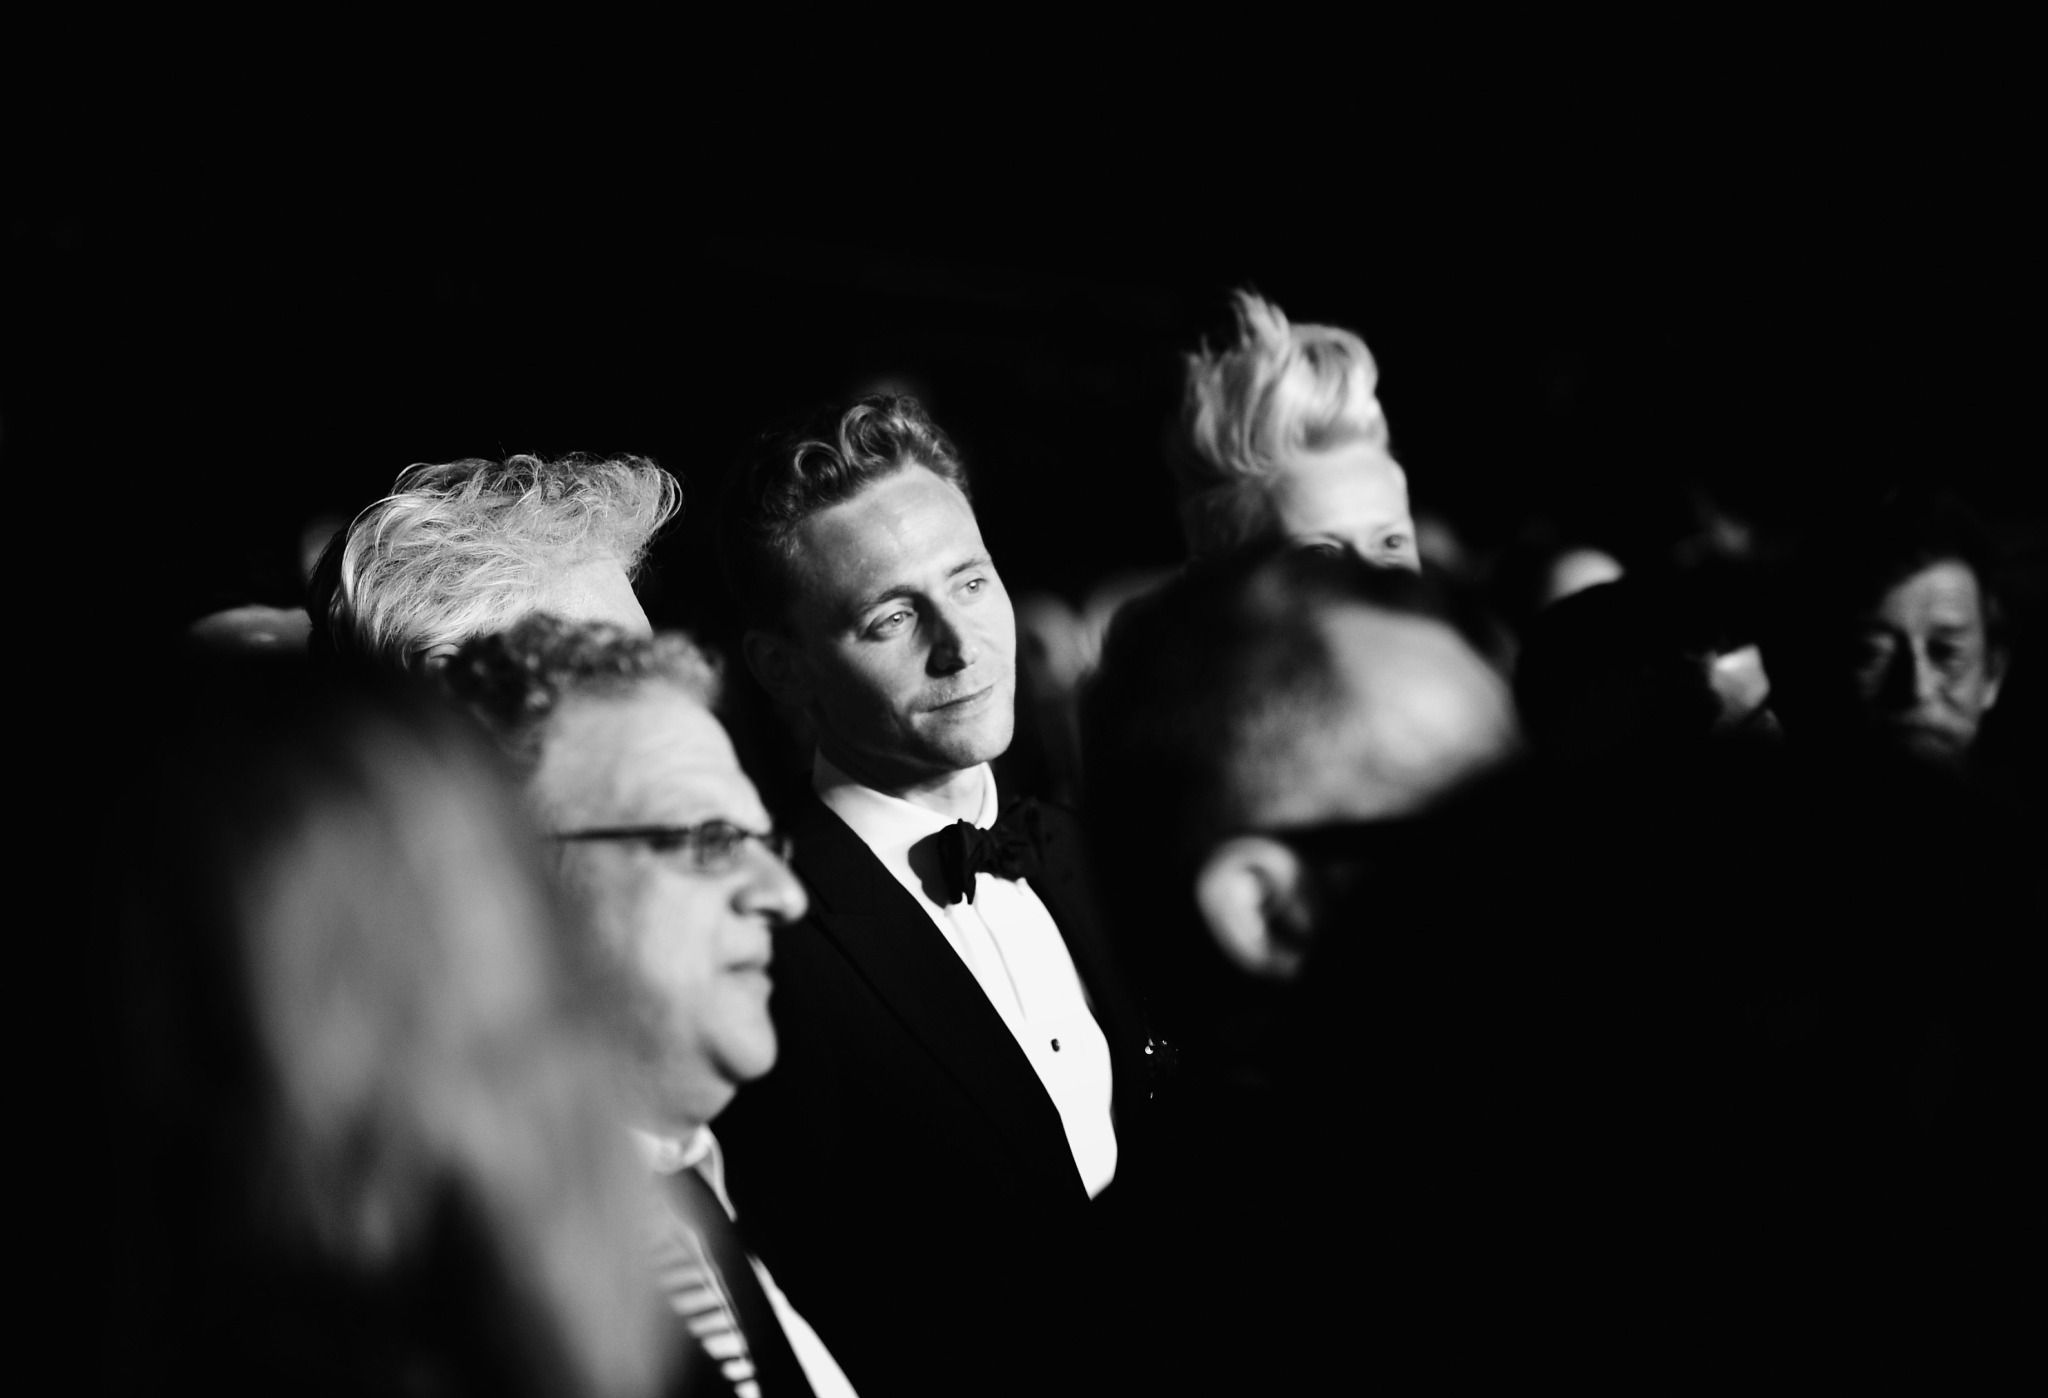 May 25, 2013 in Cannes, France